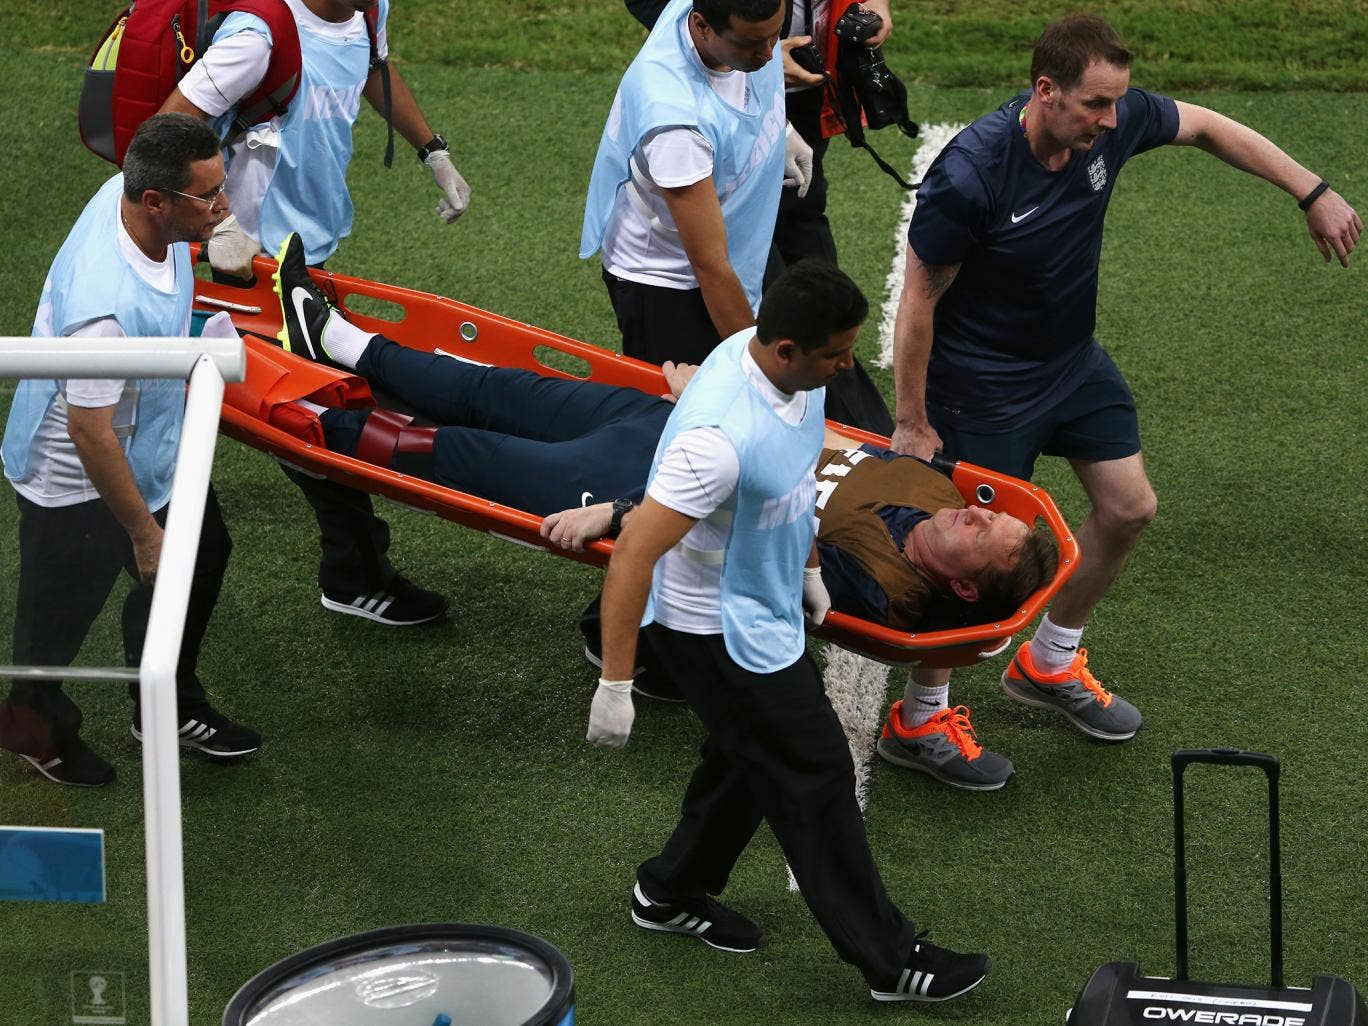 Gary Lewin is stretchered off